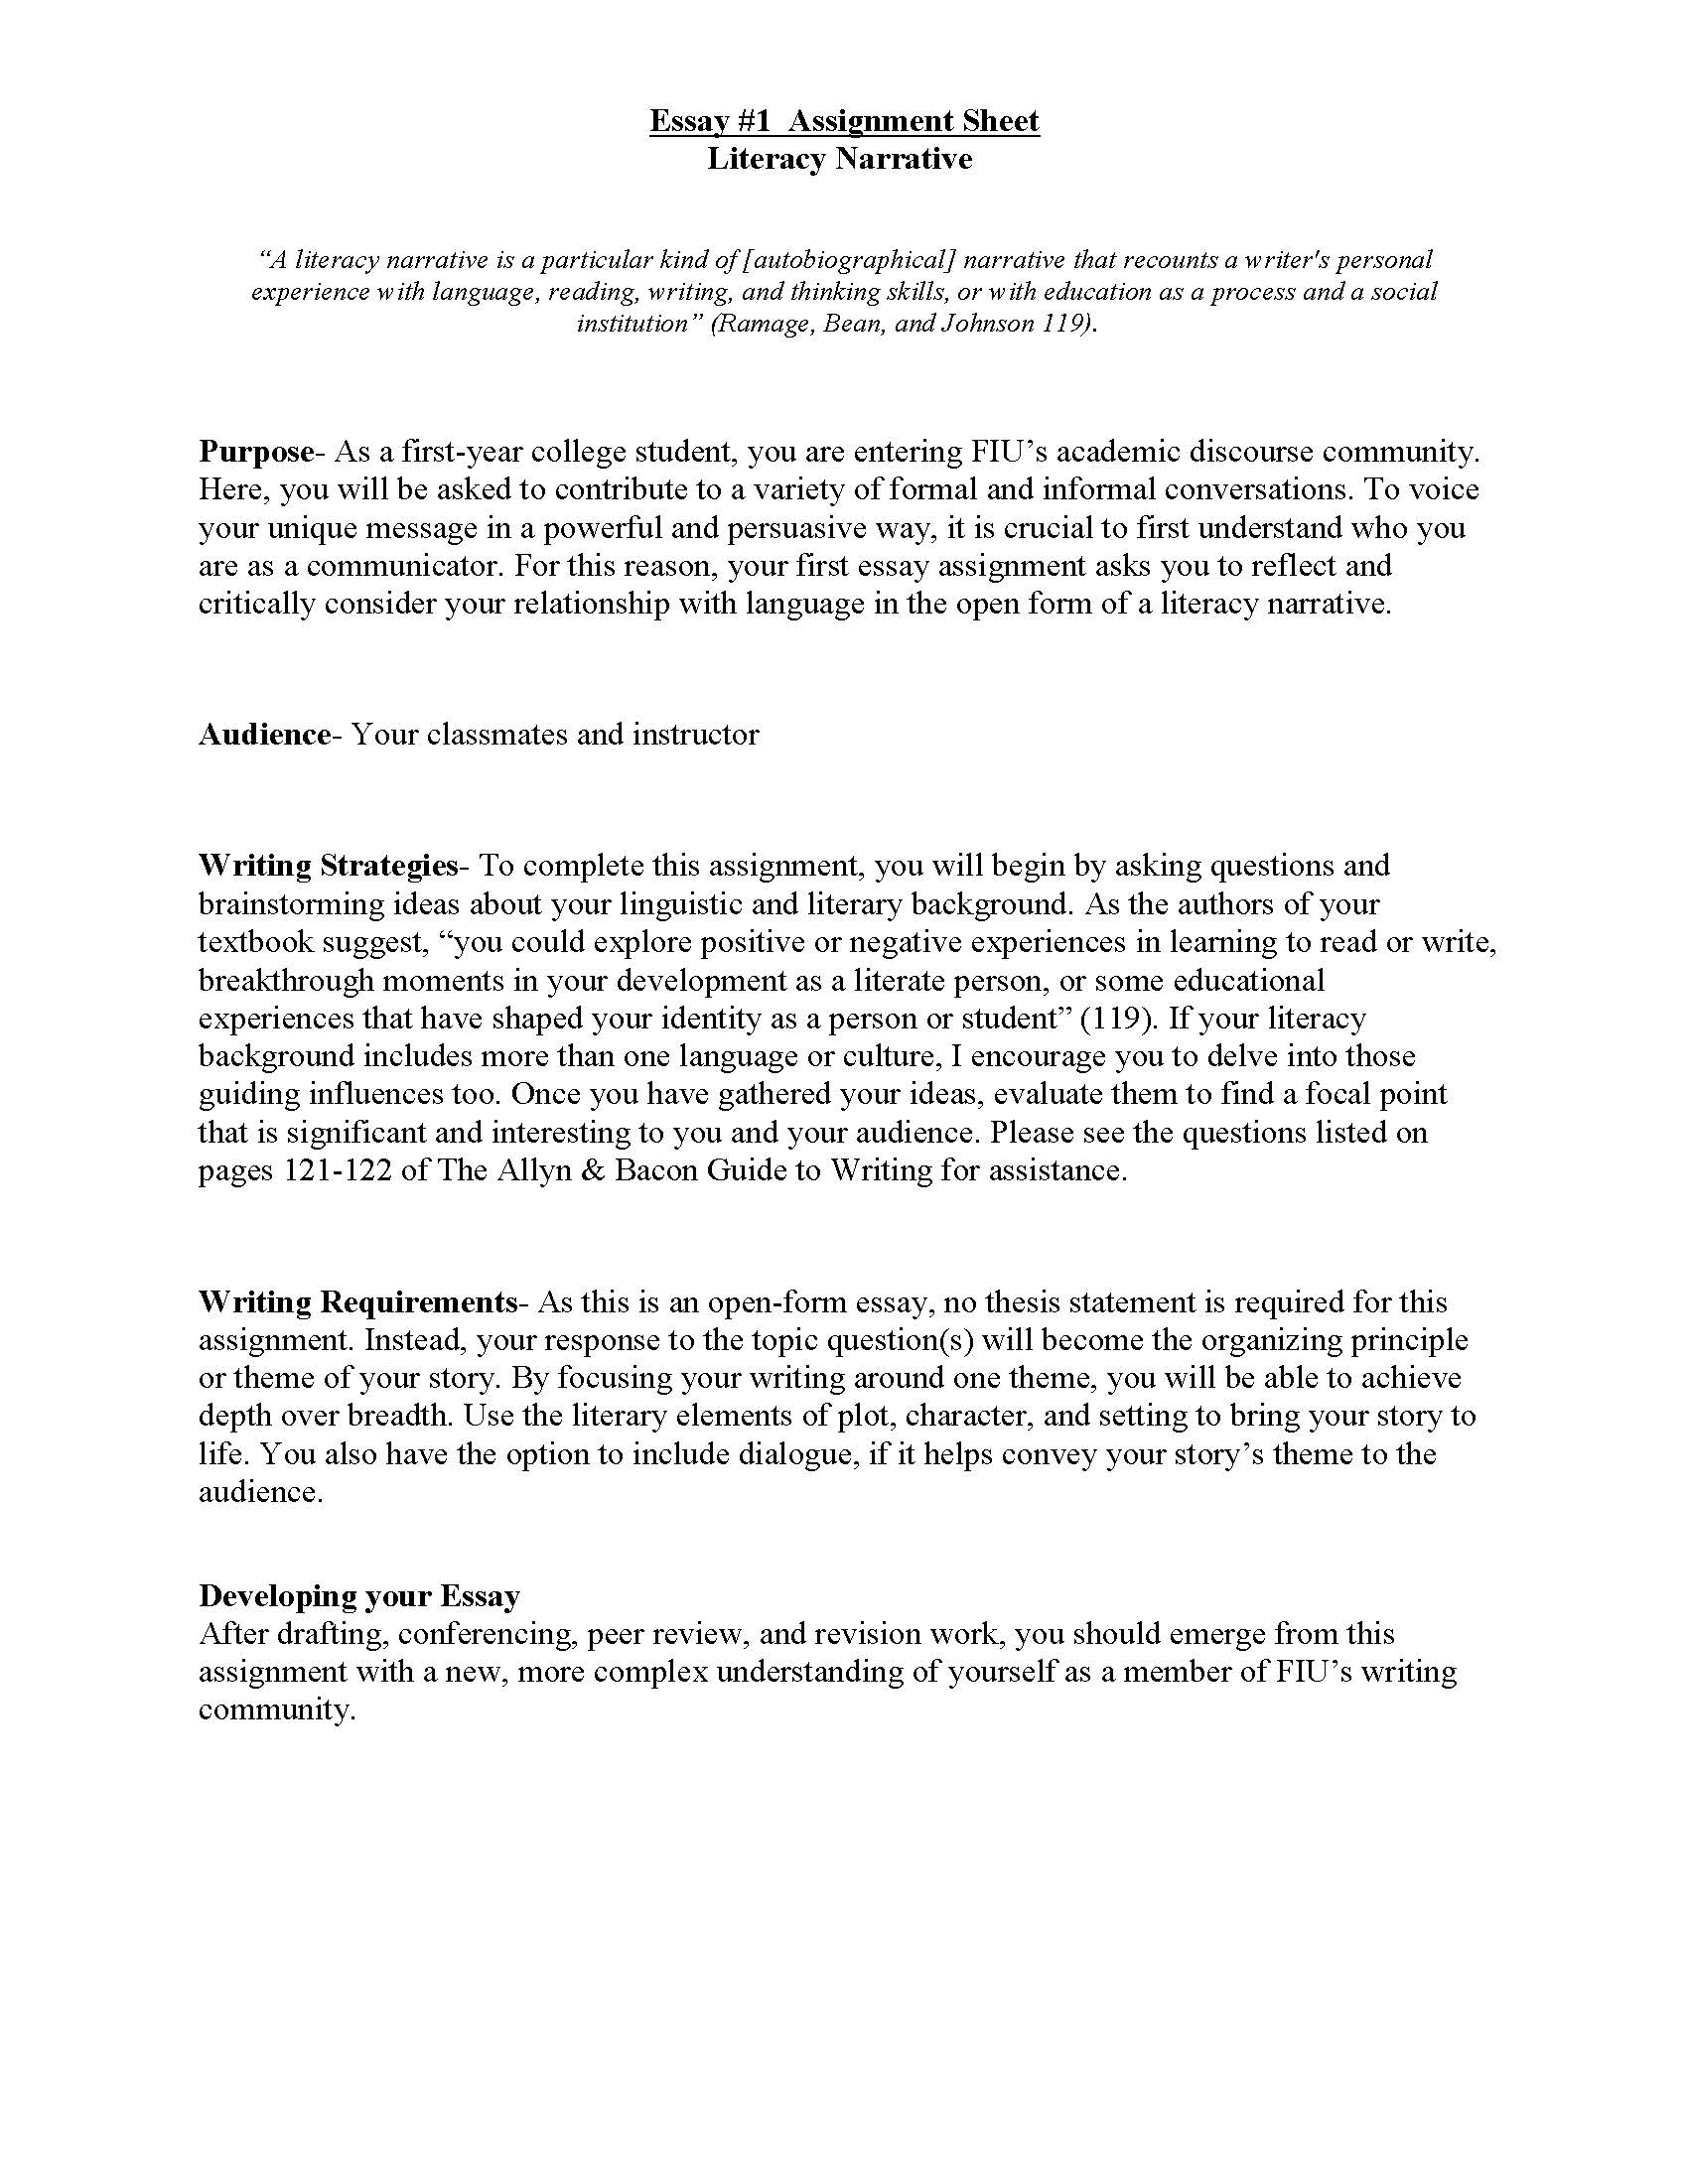 021 Essay Example Literacy Narrative Unit Assignment Spring 2012 Page 1 Essays Top Examples Spm Short About Life College Full